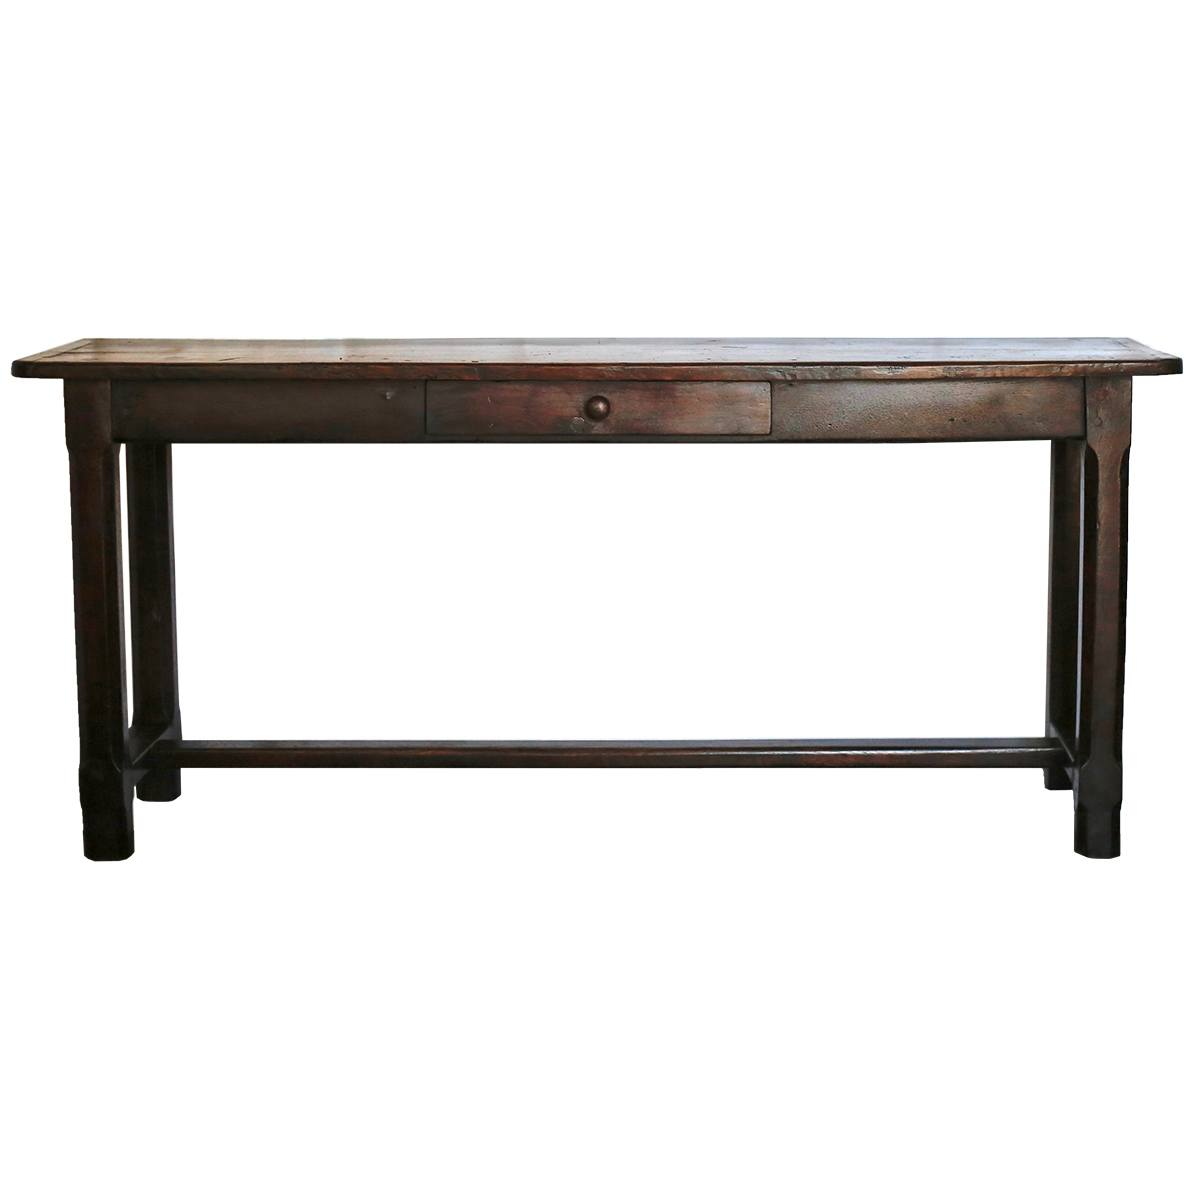 a wooden bench